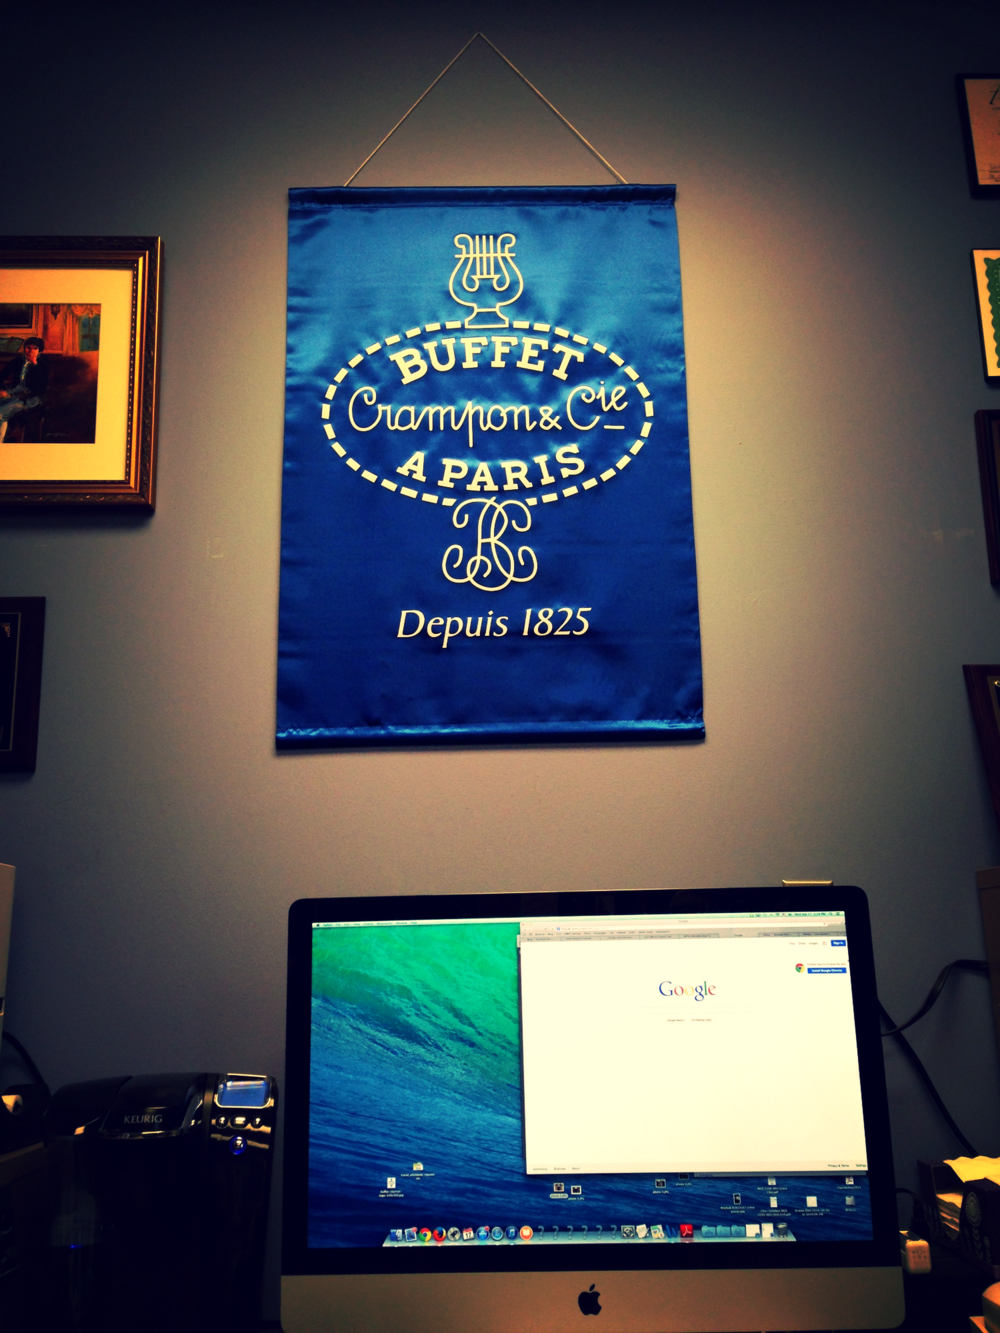 A fancy Buffet banner now hangs on my office wall